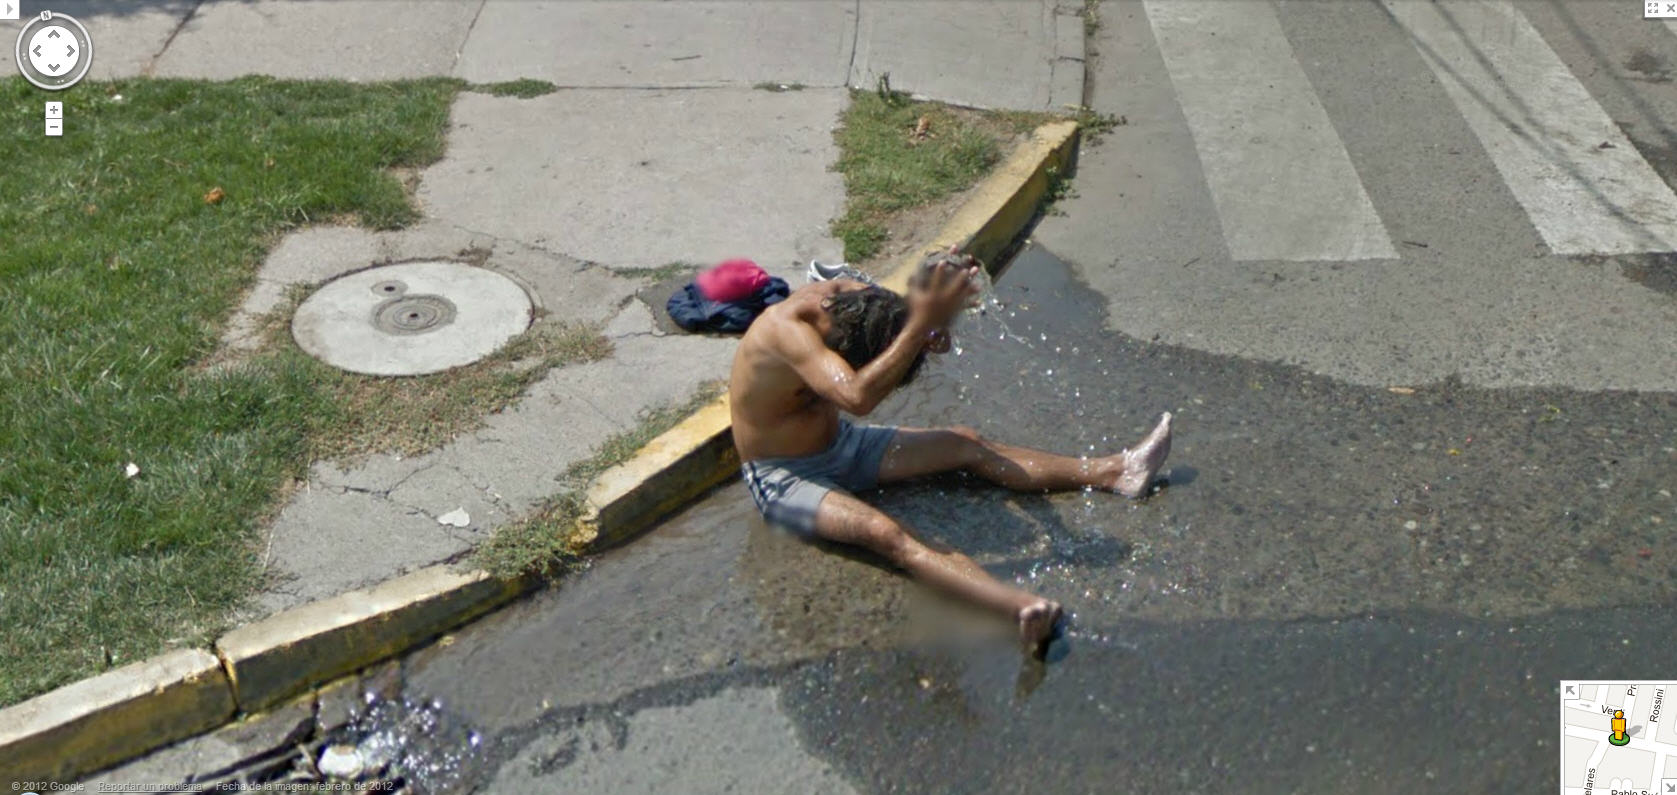 google-street-view-chile-captures-a-guy-taking-a-bath-in-the-street